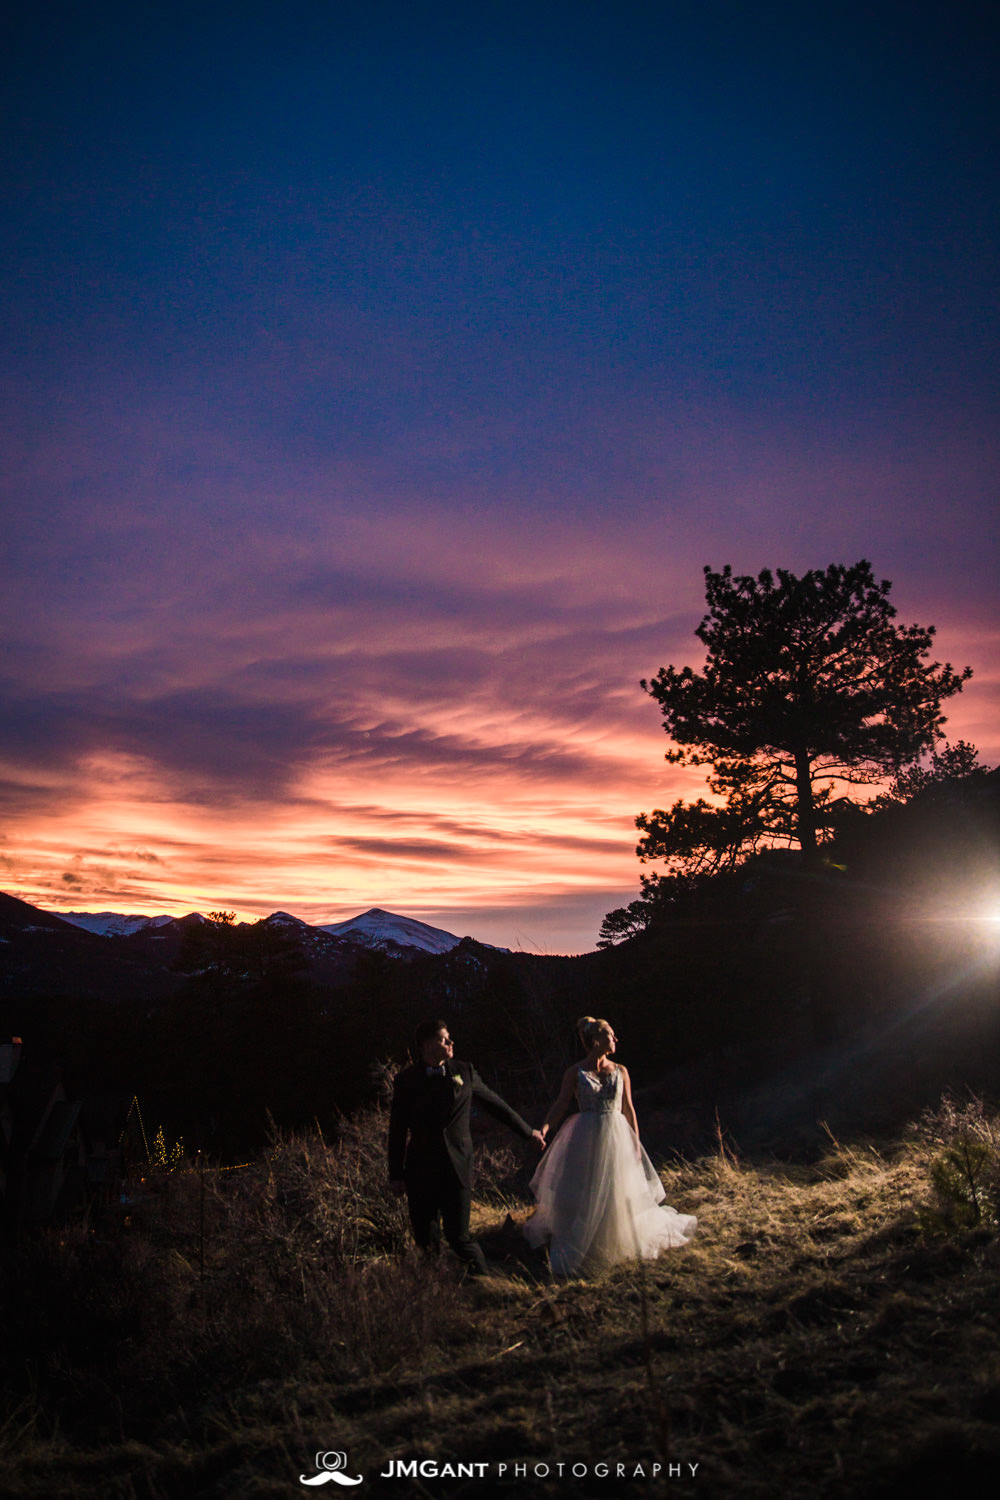 Colorful rocky mountian wedding sunset at the Della Terra Mountain Chateau in Estes Park Colorado. Photographed by Jared M. Gant of JMGant Photography.